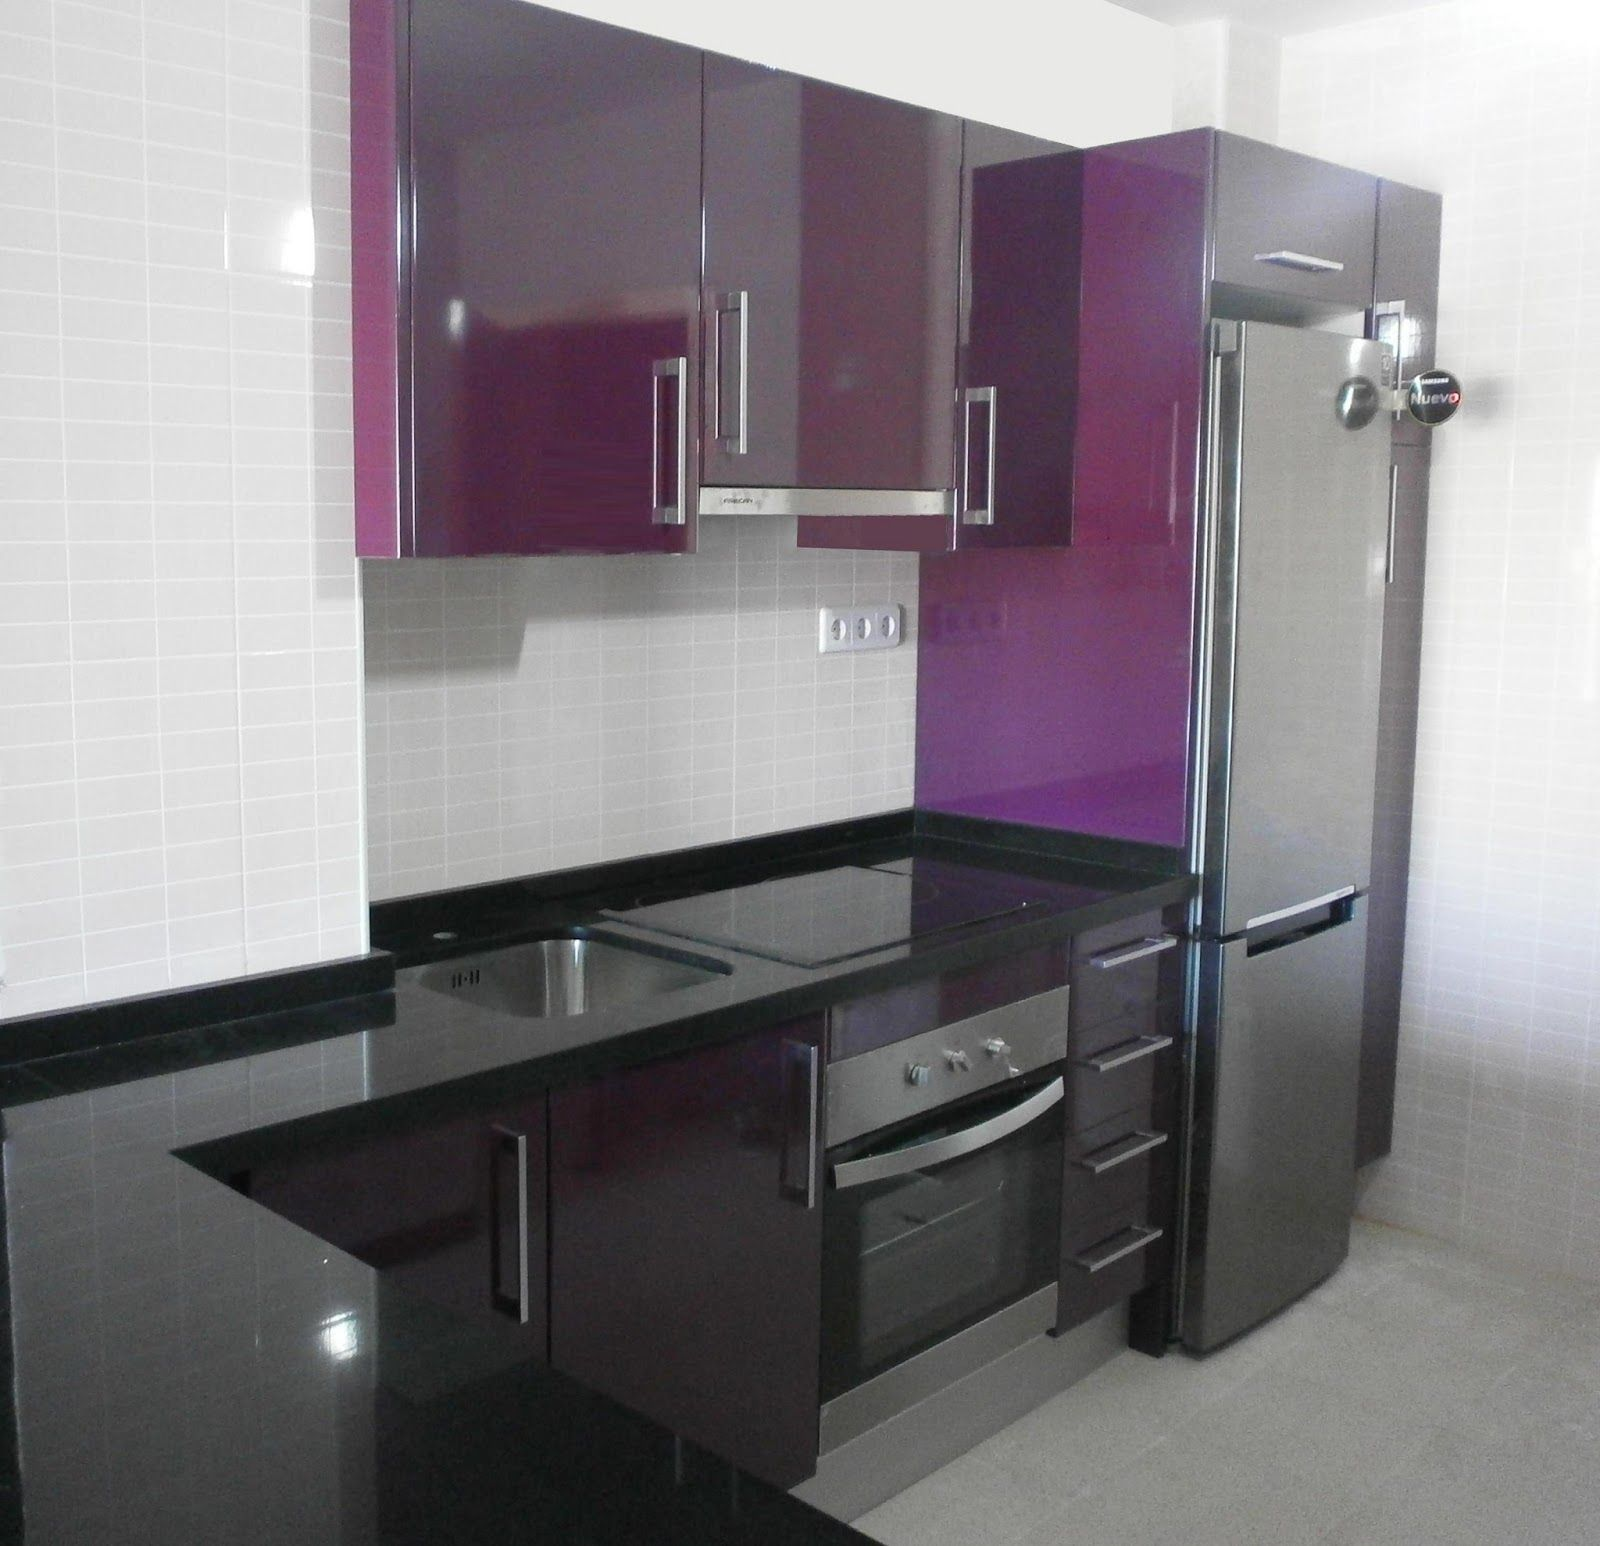 Mitad negro y mitad morada my house my dream pinterest for Cocinas moradas modernas